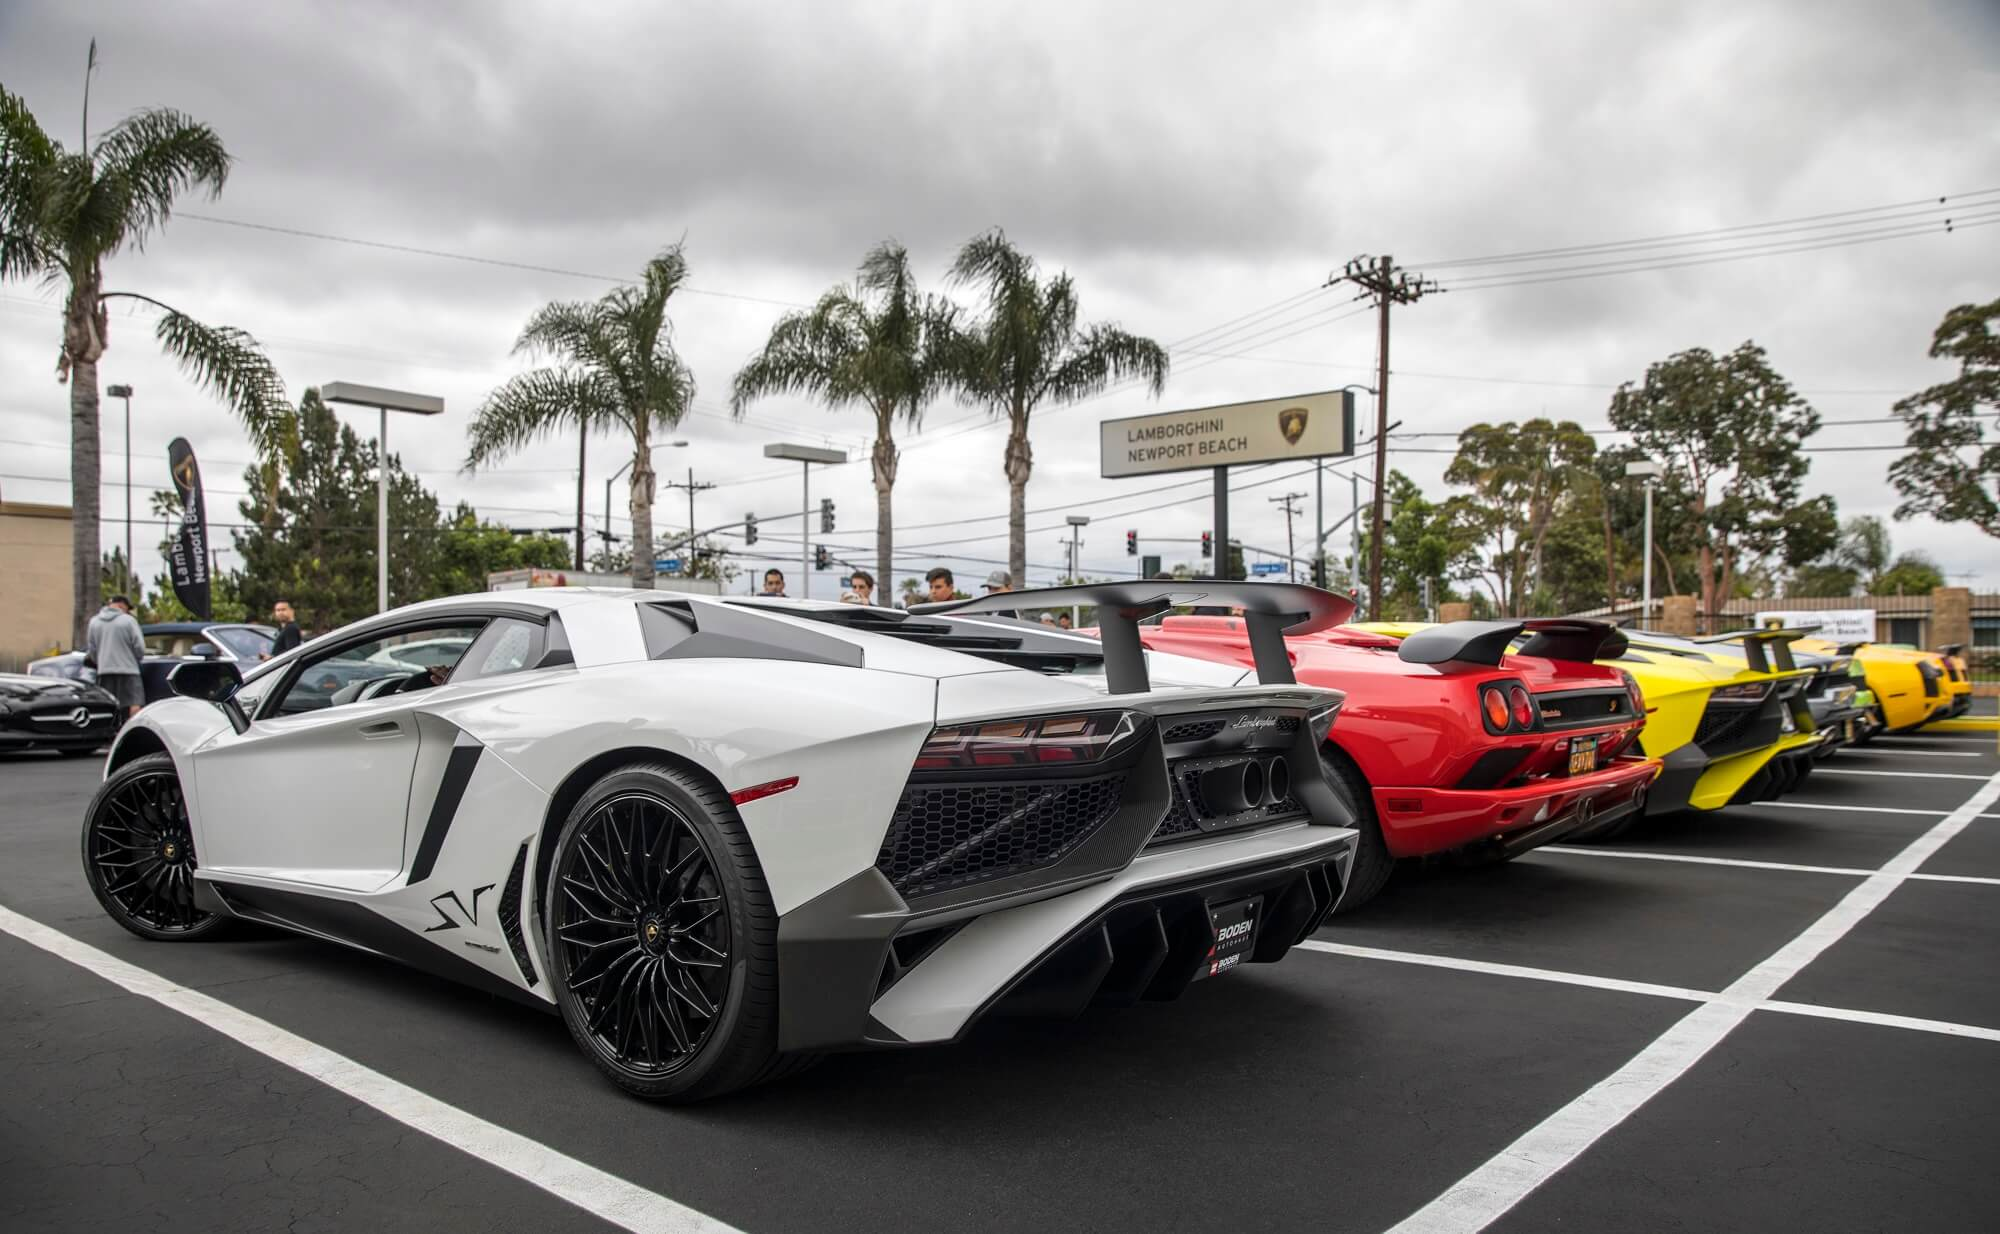 Captivating EXCLUSIVE: Lamborghini Newport Beach Supercar Show